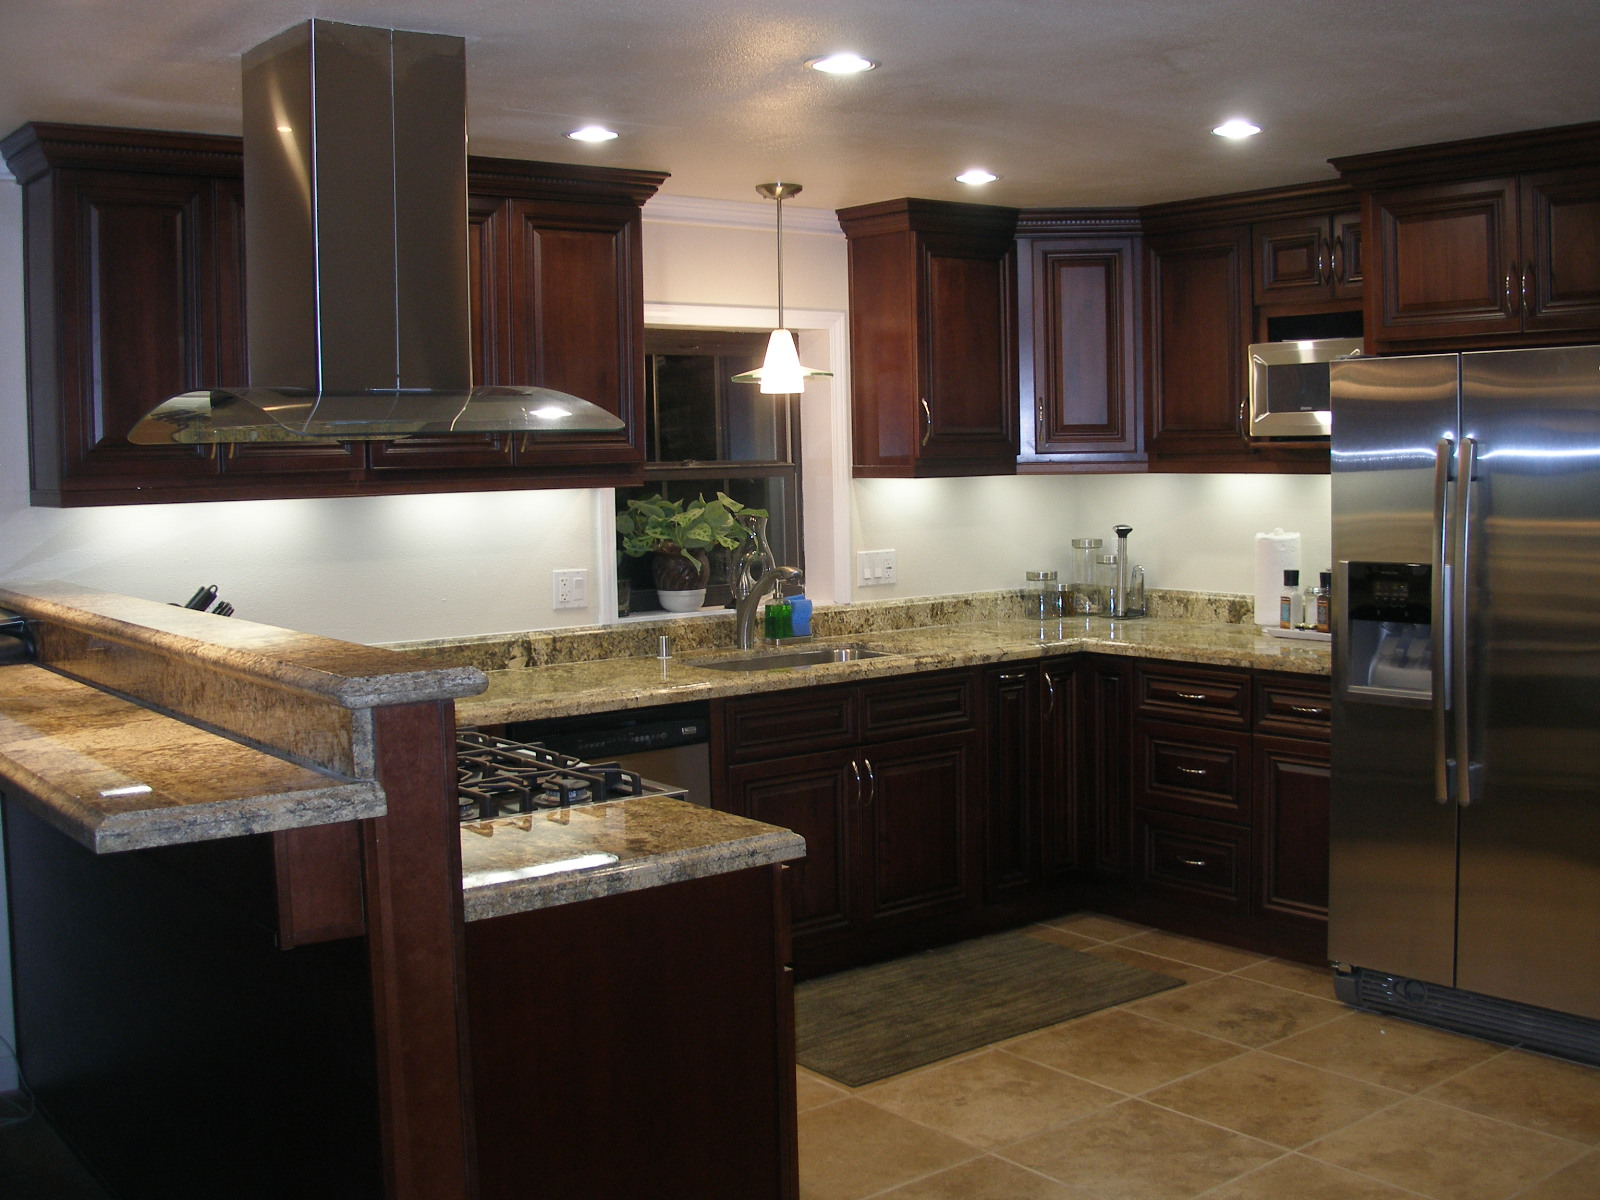 Kitchen remodeling brad t jones construction for Kitchen redesign ideas